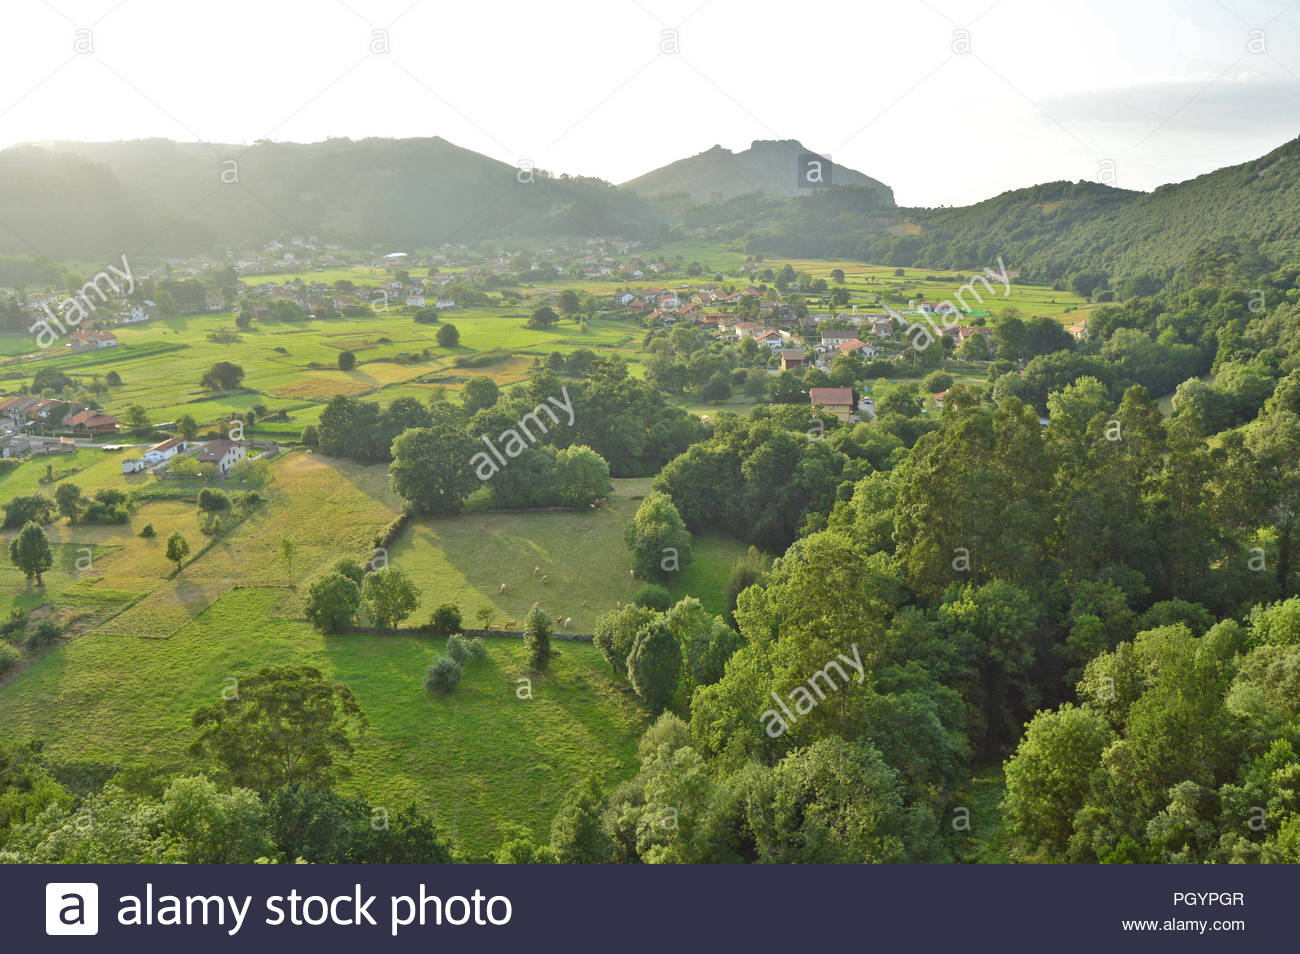 Green Spain - lush pastures with rural dwellings and hills of Cantabria in Northern Spain. - Stock Image